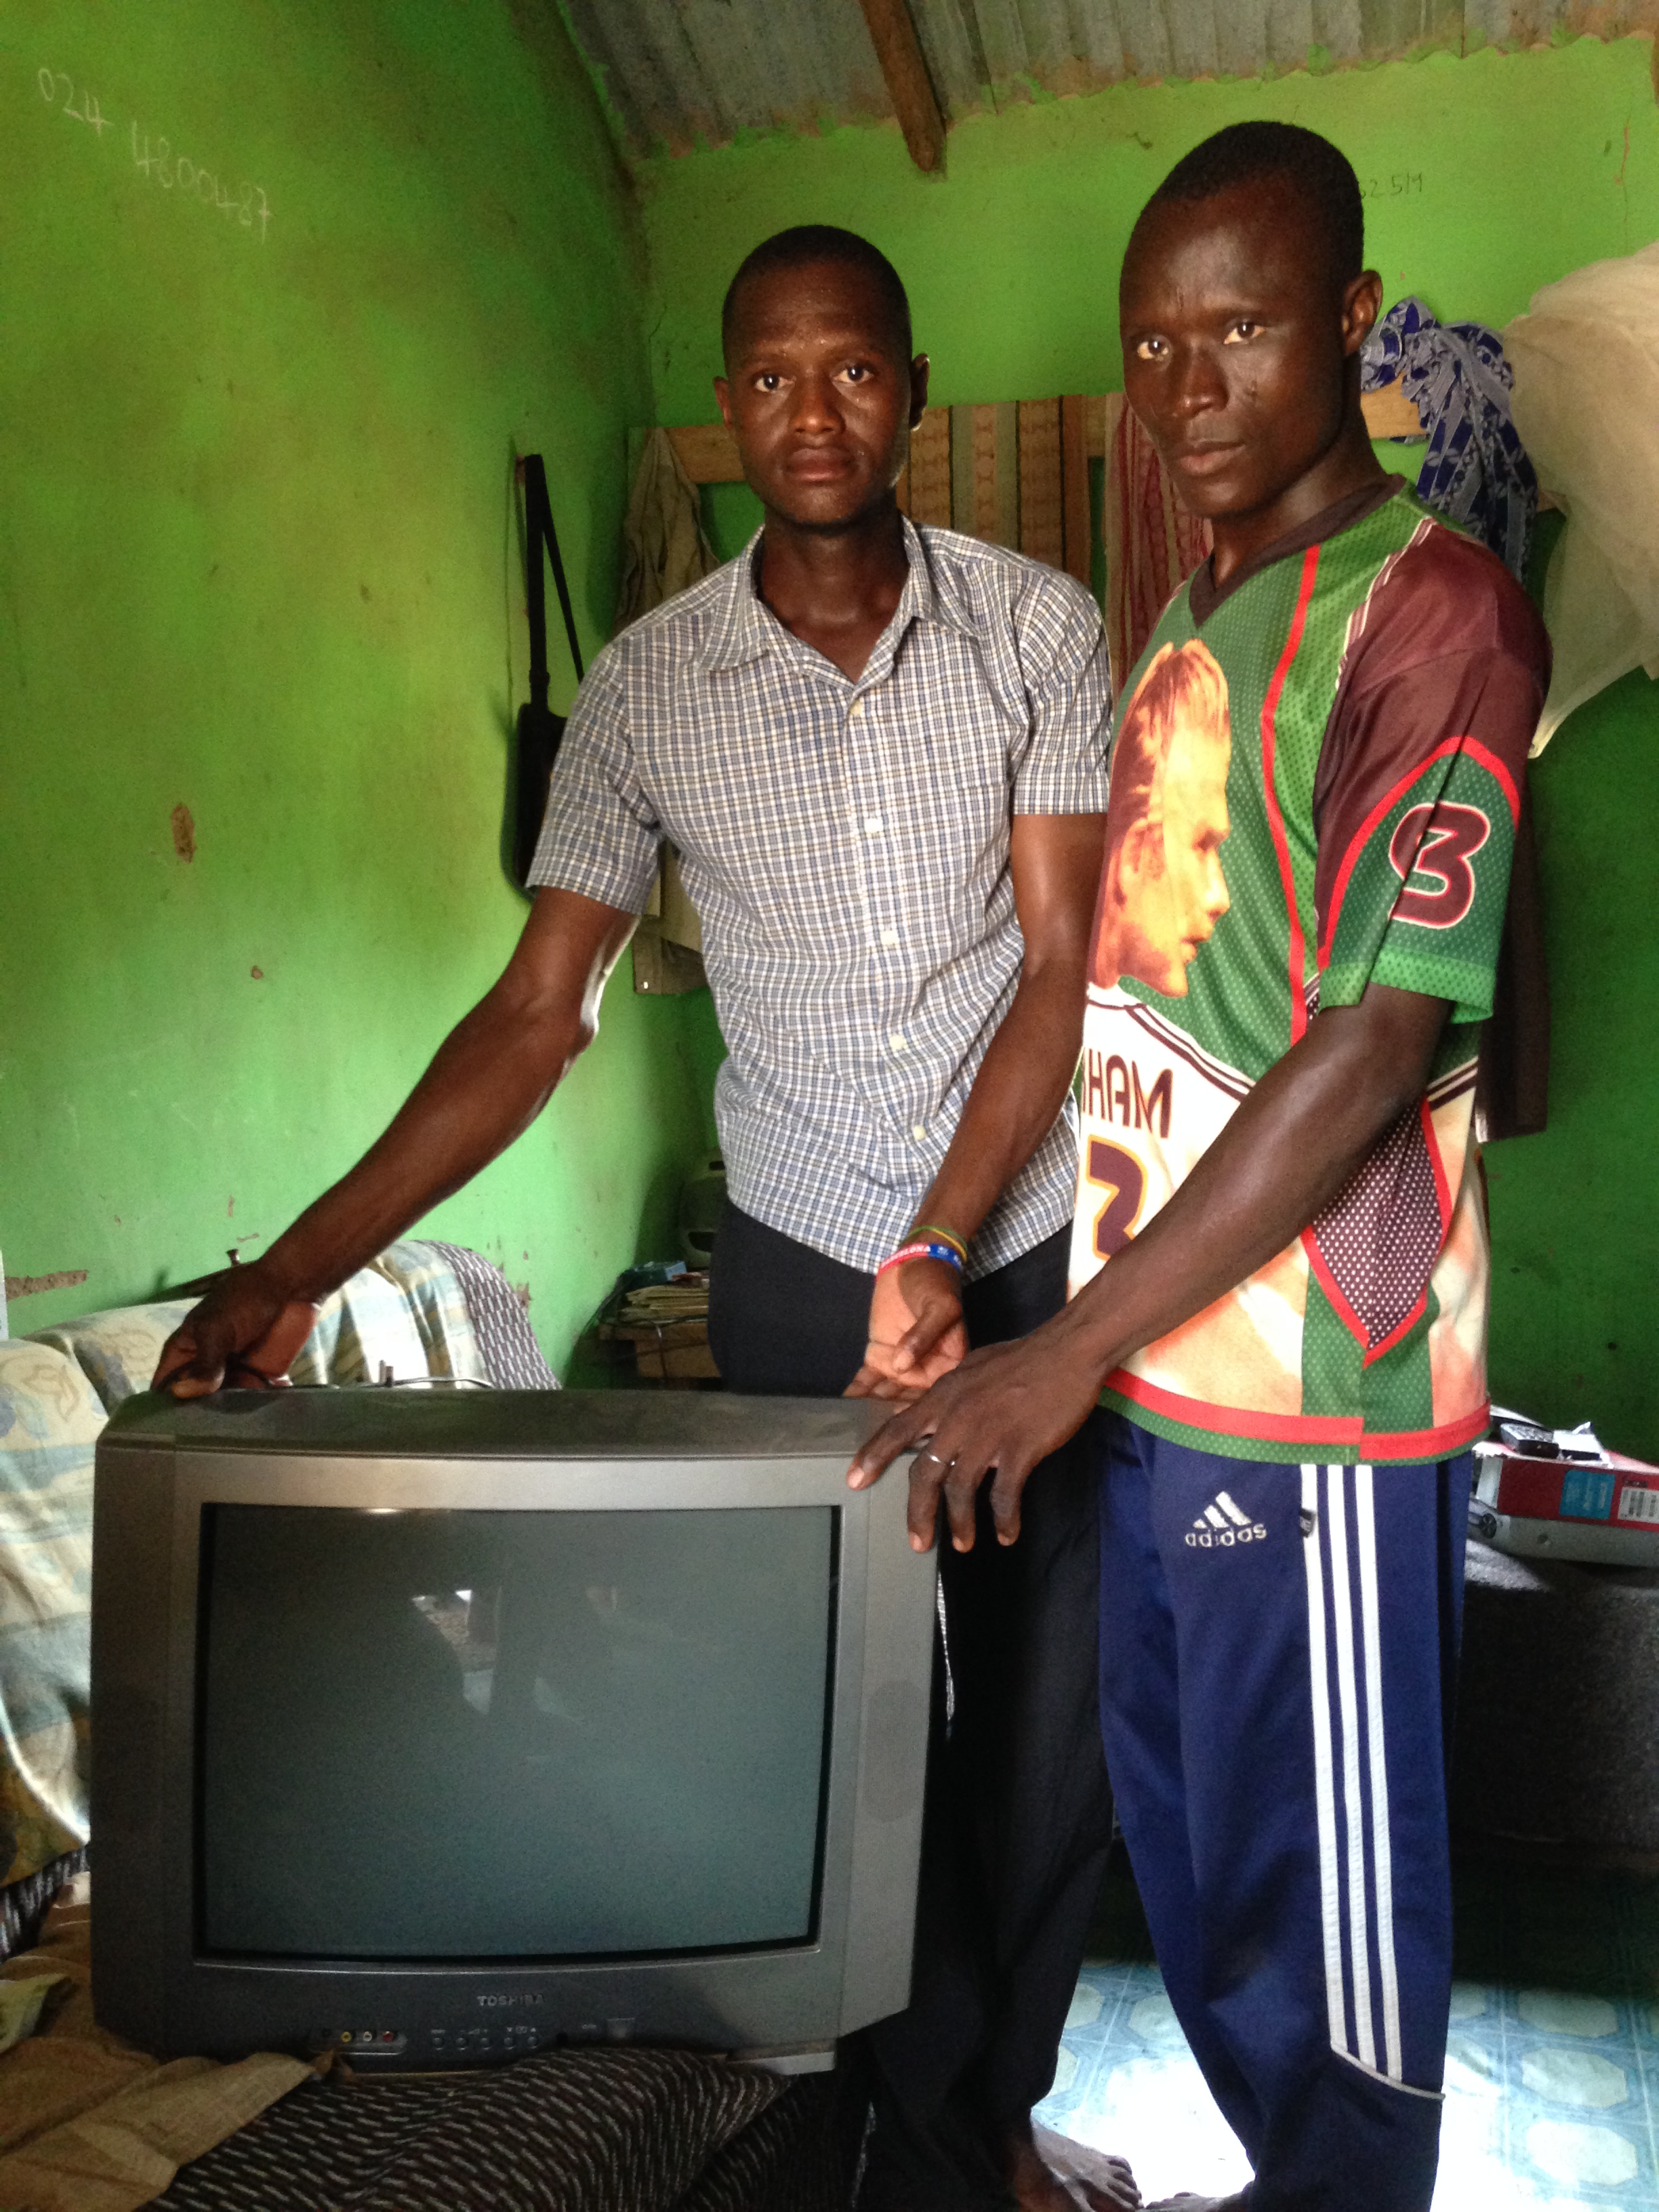 Some people own a tv in a village with no electricity.